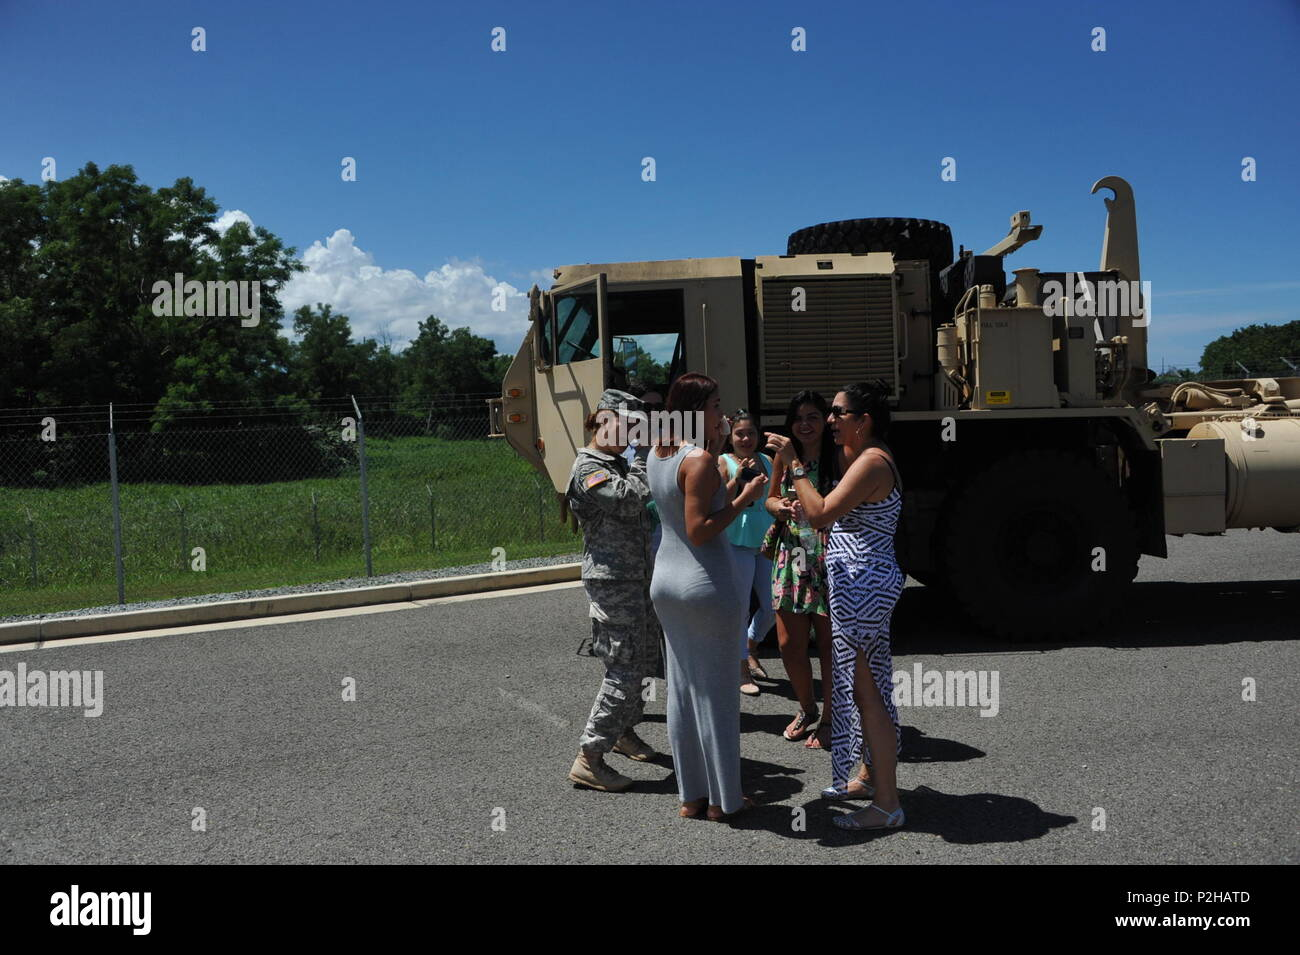 Spec. Valerie Velez and her family share an emotional moment after the 246th Quartermaster Co. (MA) farewell ceremony at the Army Reserve Center at Mayaguez, PR. - Stock Image